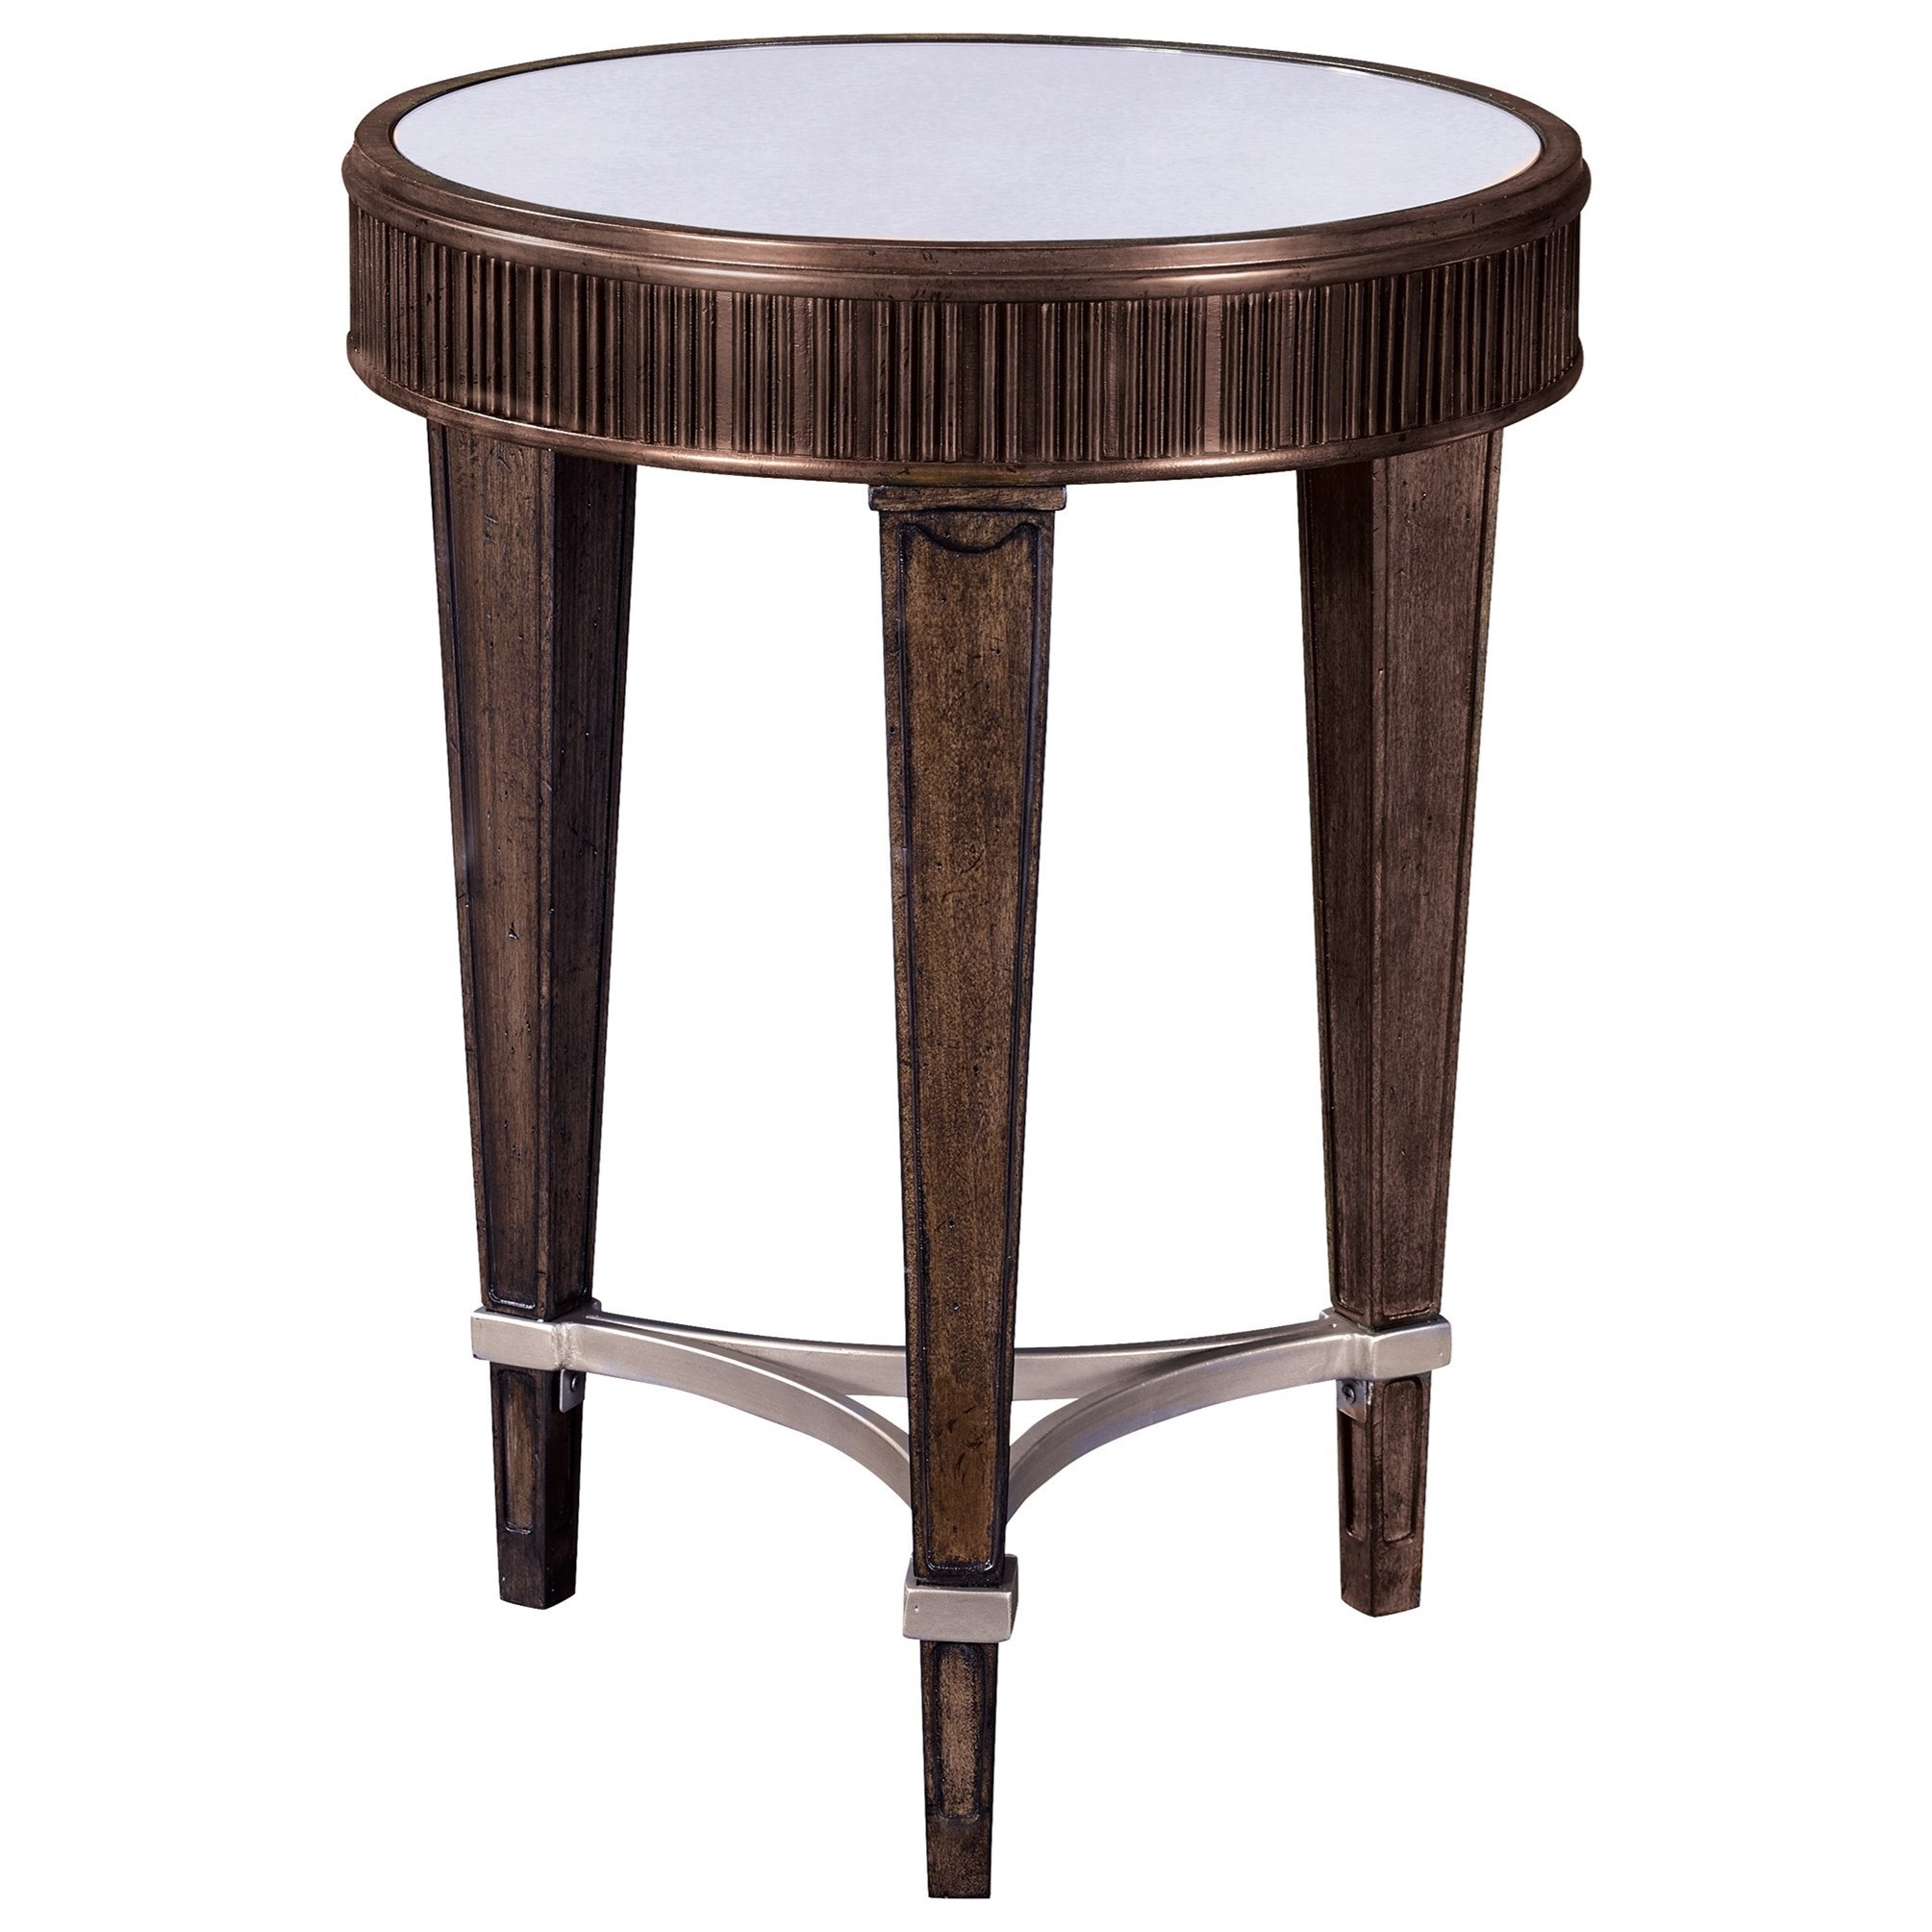 Broyhill Furniture Cashmera Round Chairside Table - Item Number: 4860-004